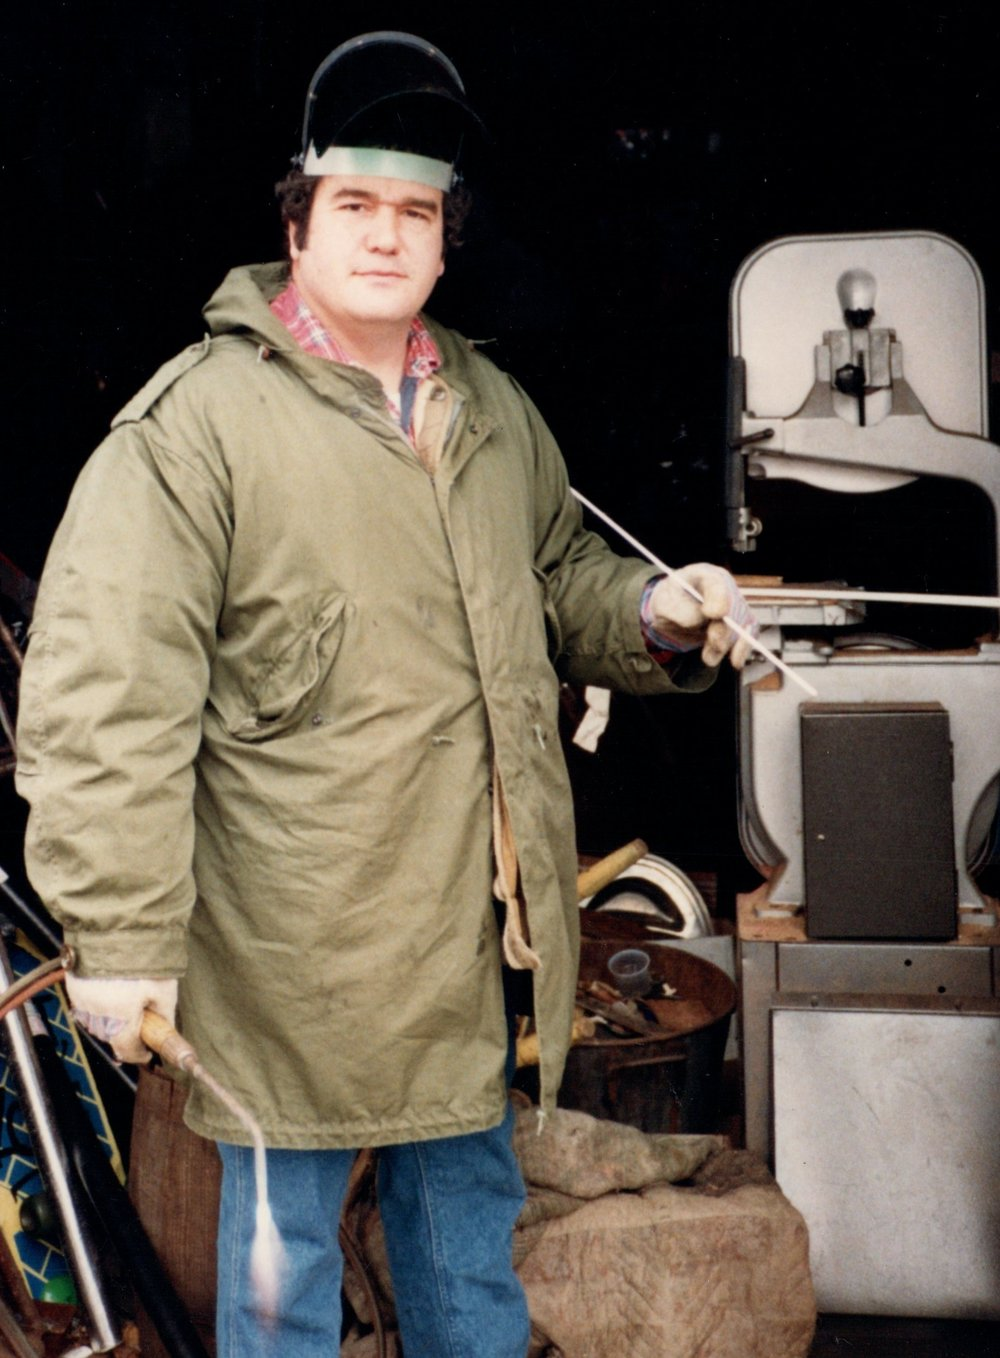 Michael Malpass at work, 1986. The bandsaw in background was used for slicing soft-metal (brass, copper, bronze) pieces.